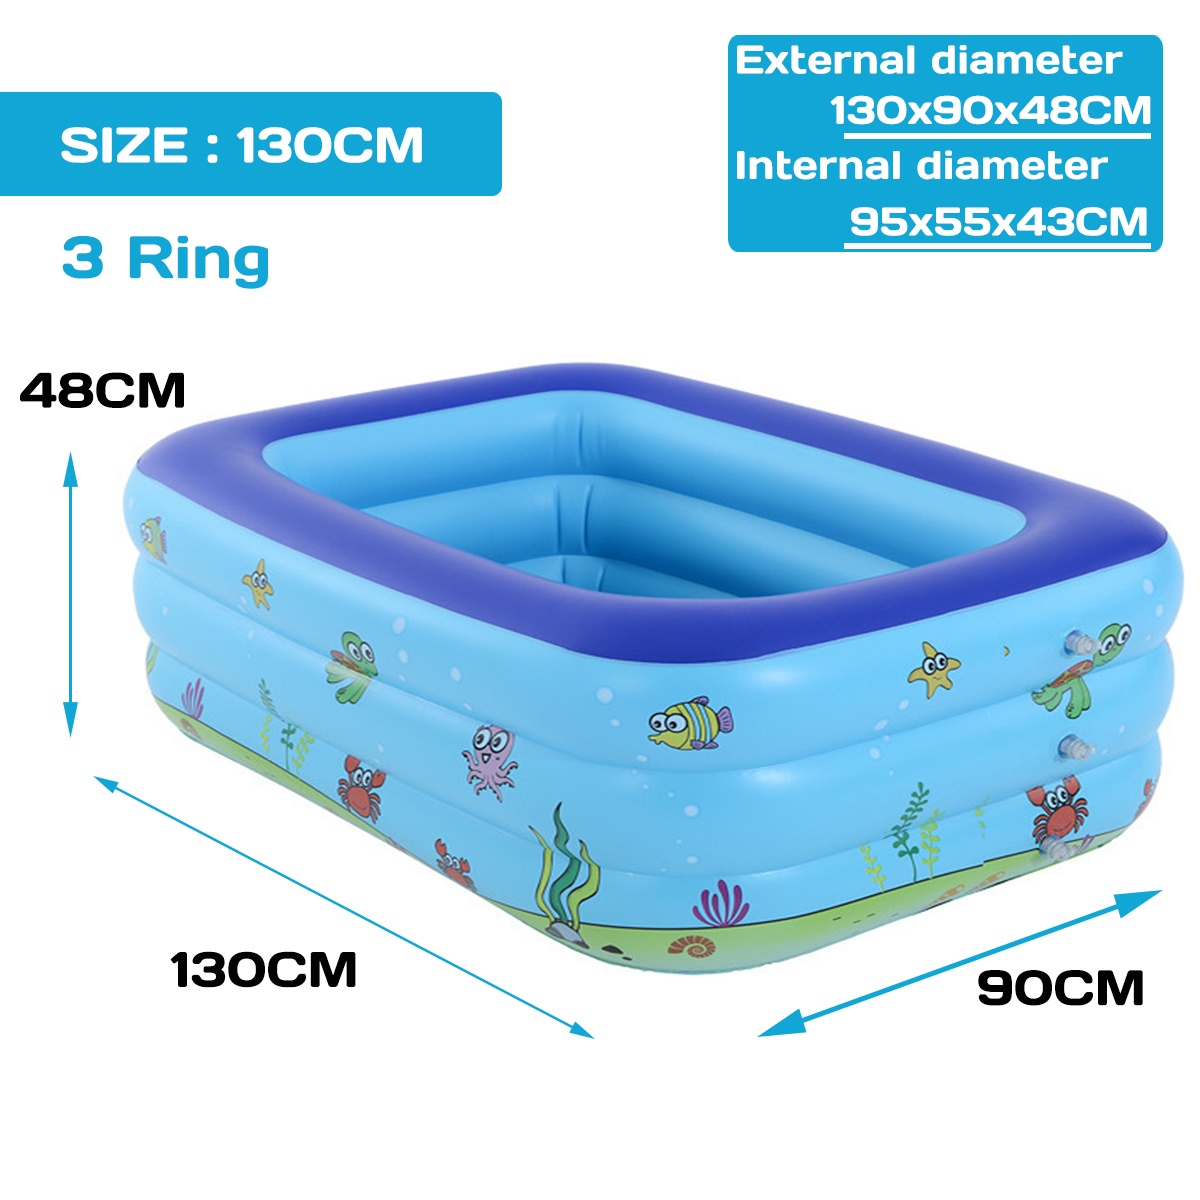 For 1-5 Persons Family 110/130/150CM 2Ring/3Ring Inflatable Swimming Pool Adults Kids Family Pool Bathing Tub Outdoor Indoor